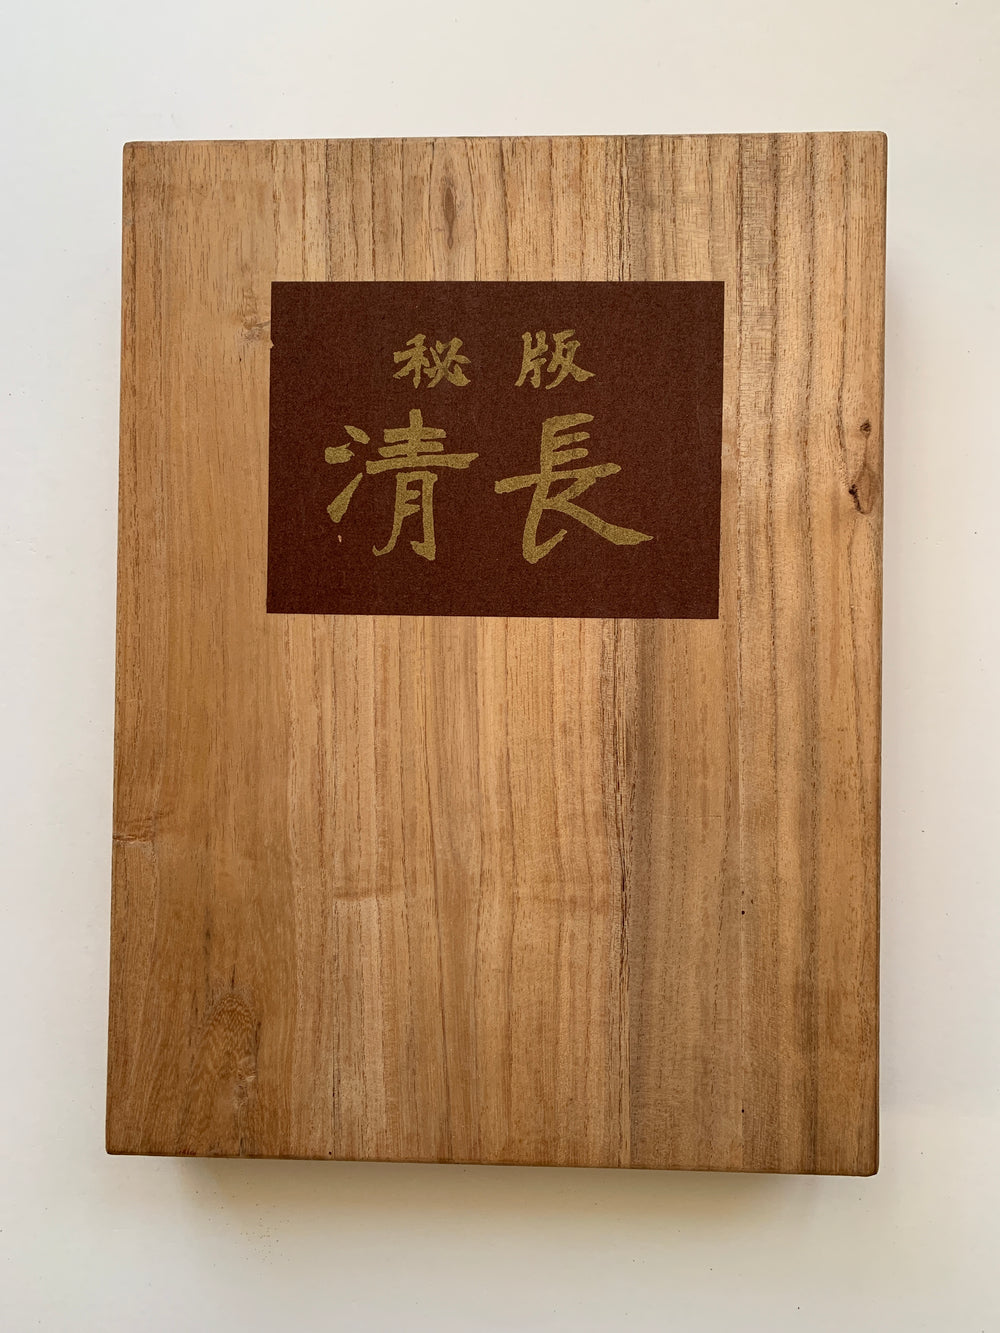 Kiyonaga's Unexhibited Masterpieces (Wooden version)